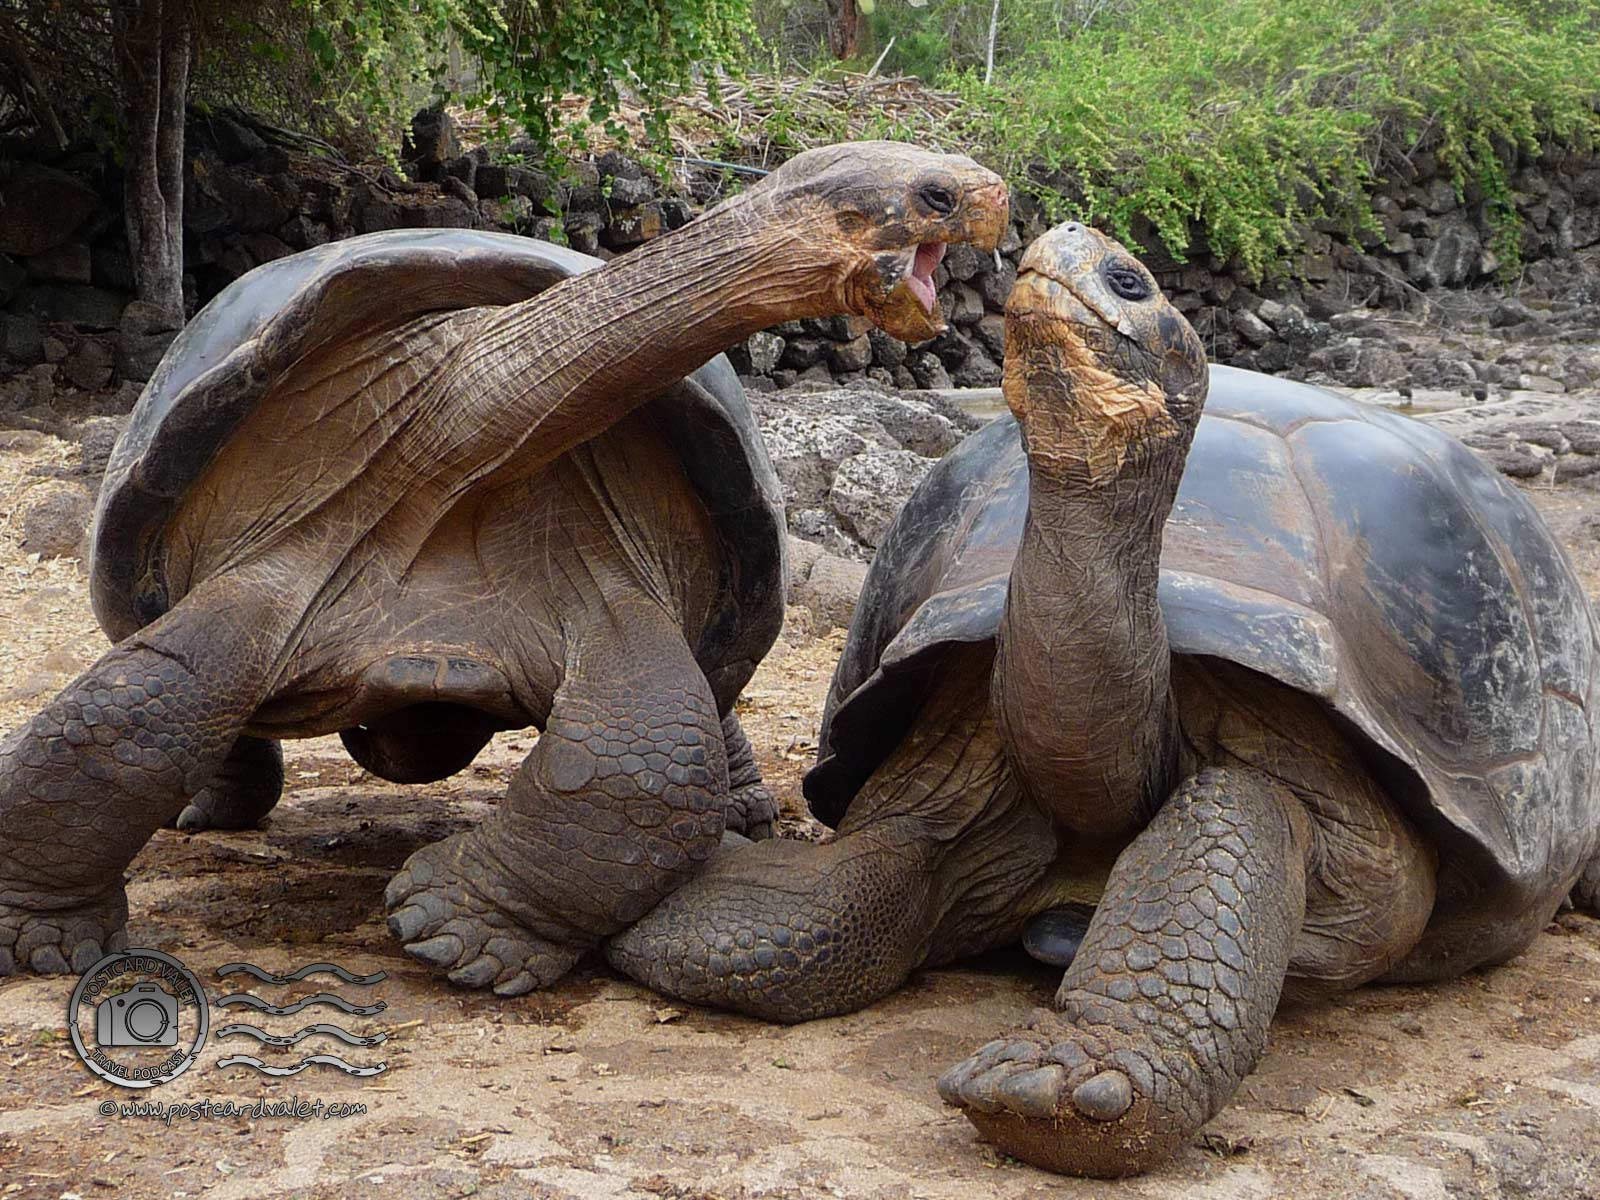 Fight of Tortoises